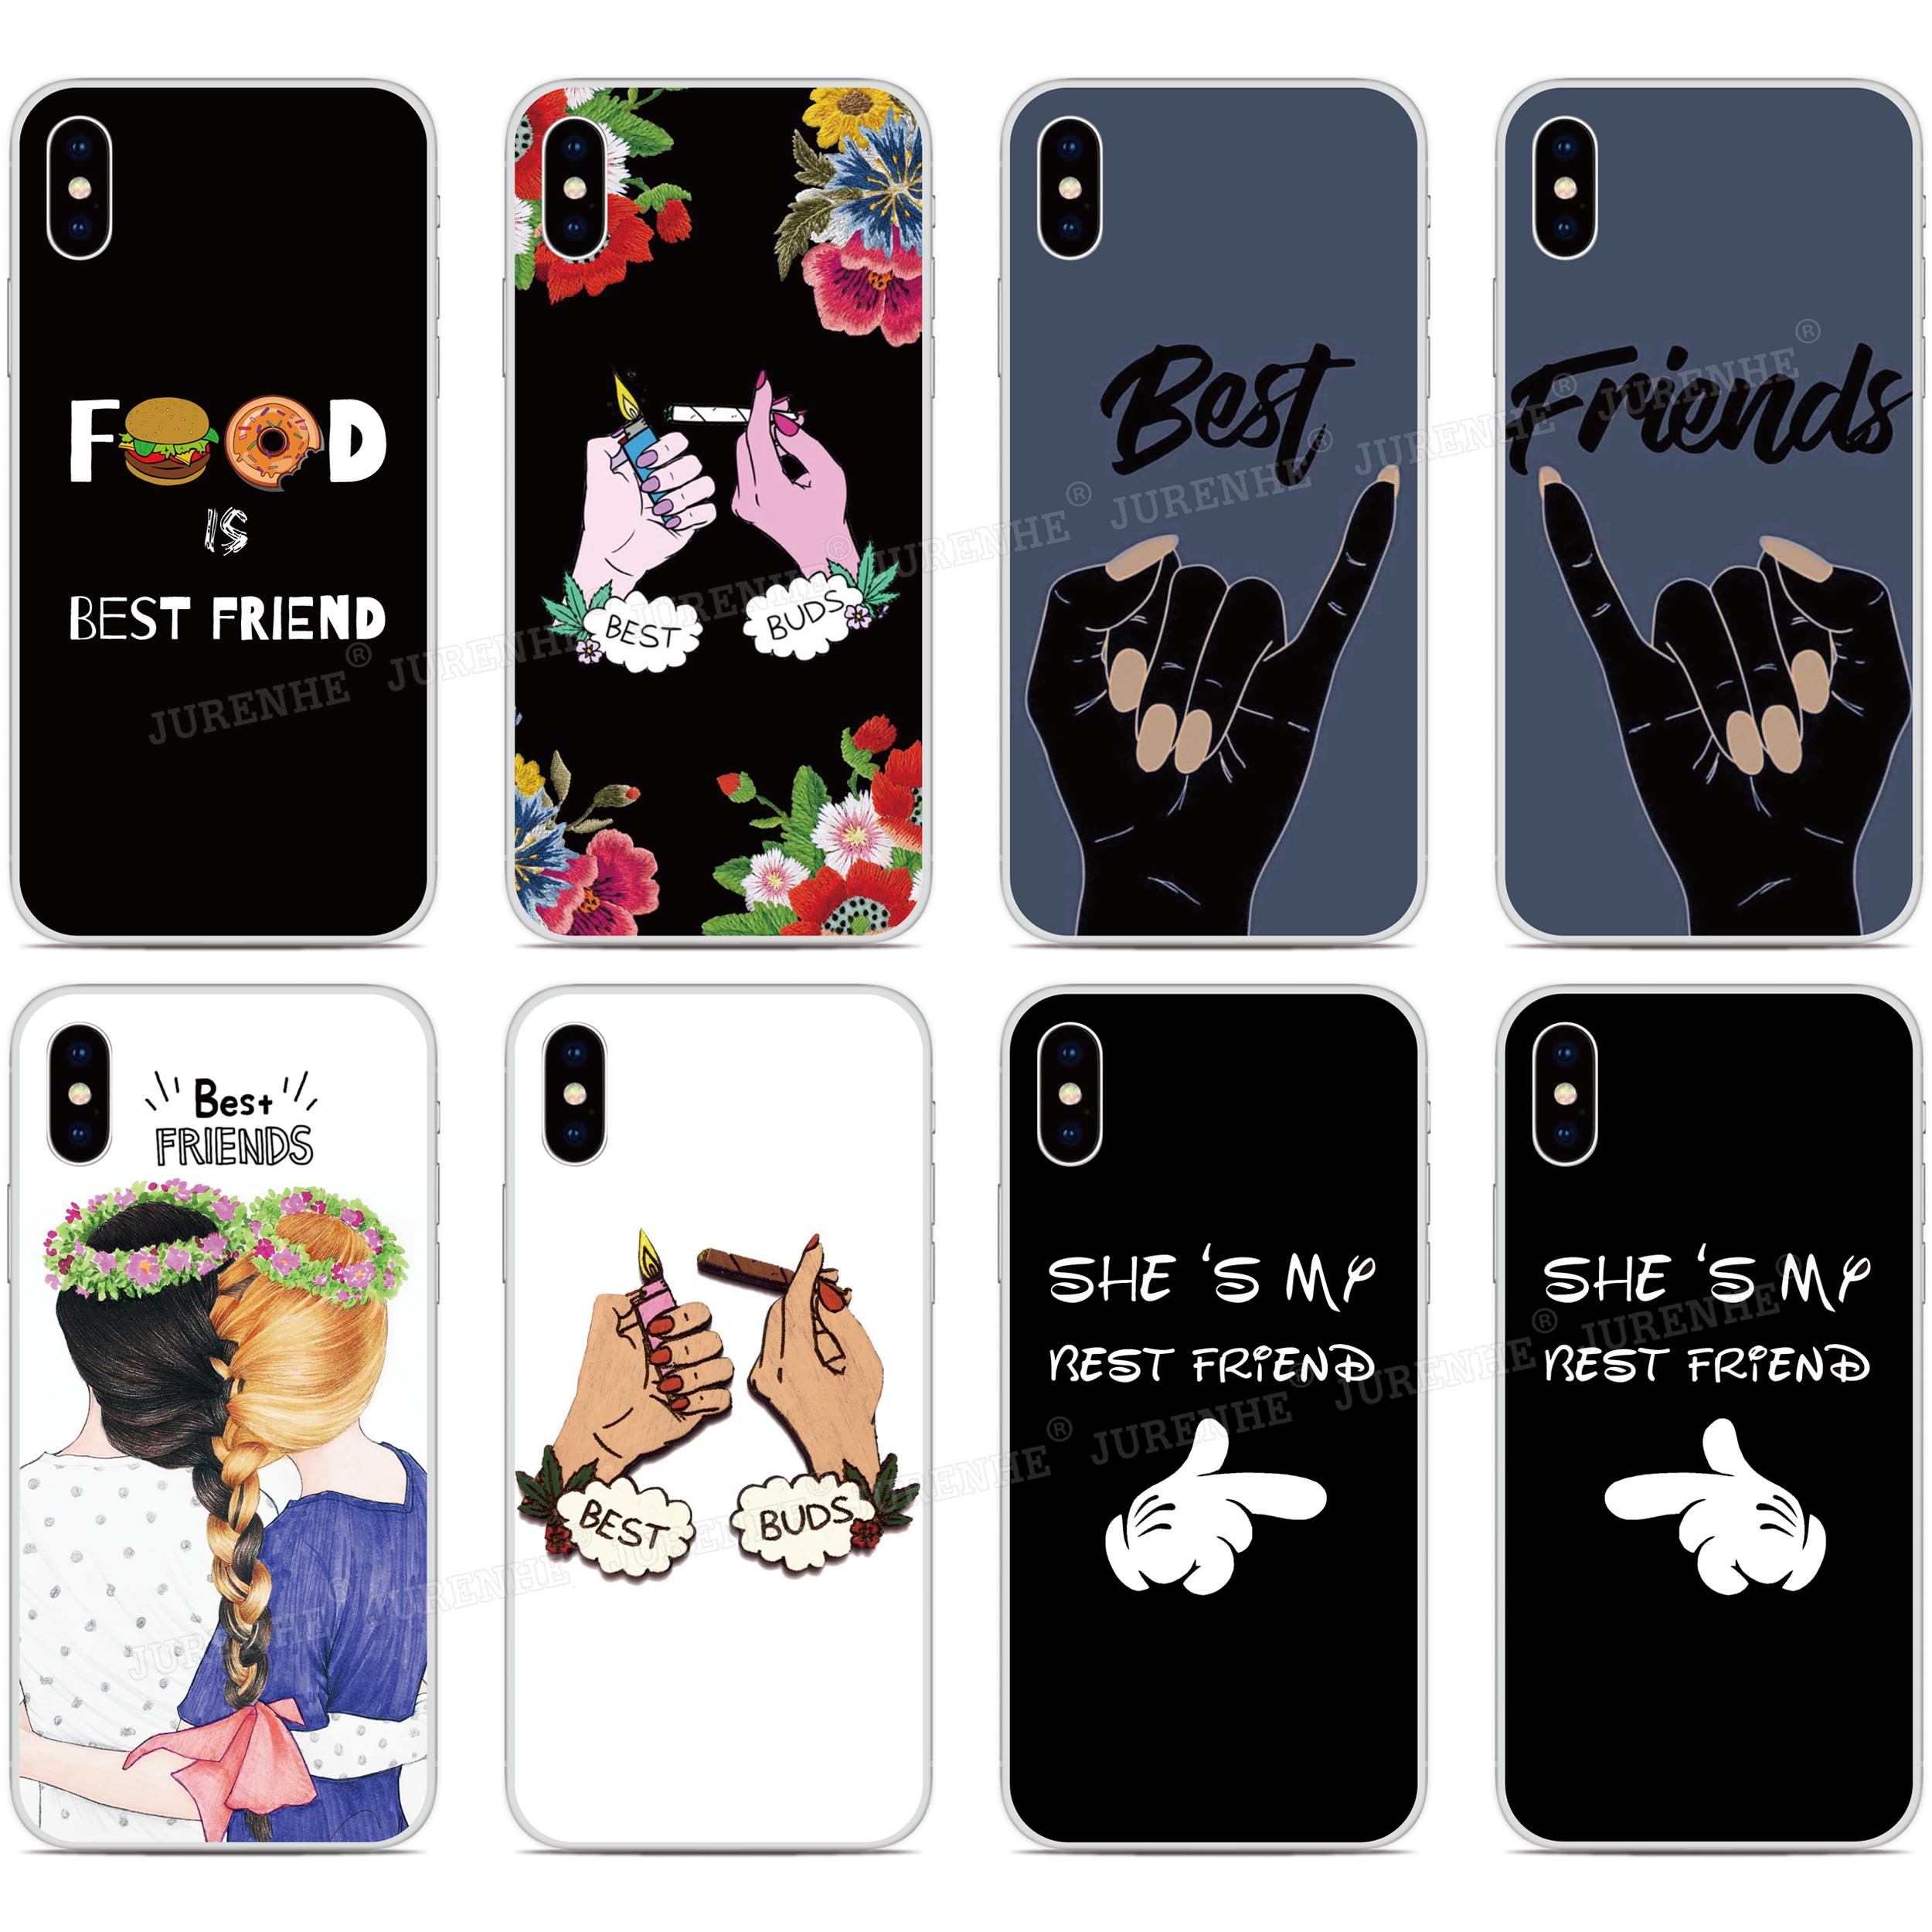 Bff Best Buds Friends Phone Case For OPPO Find X2 Pro A9 A8 A5 A31 2020 A91 AX5S Realme 5 6 X50 Reno A 3 Pro Soft TPU Back Cover image